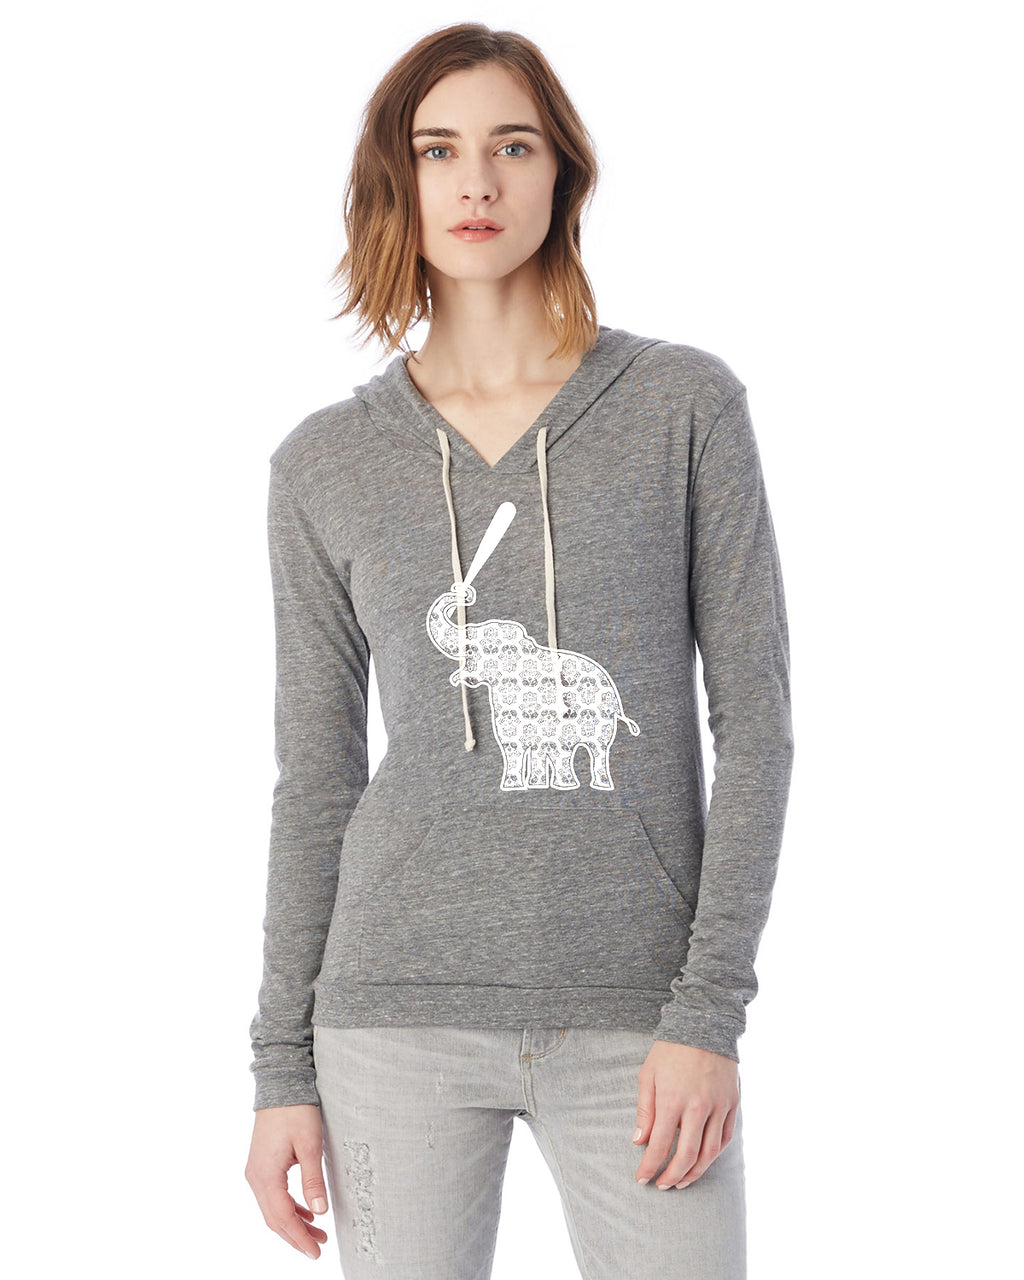 Elephant with Softball Bat Softball Eco Jersey Pullover Hoodie Animal Sports Collection